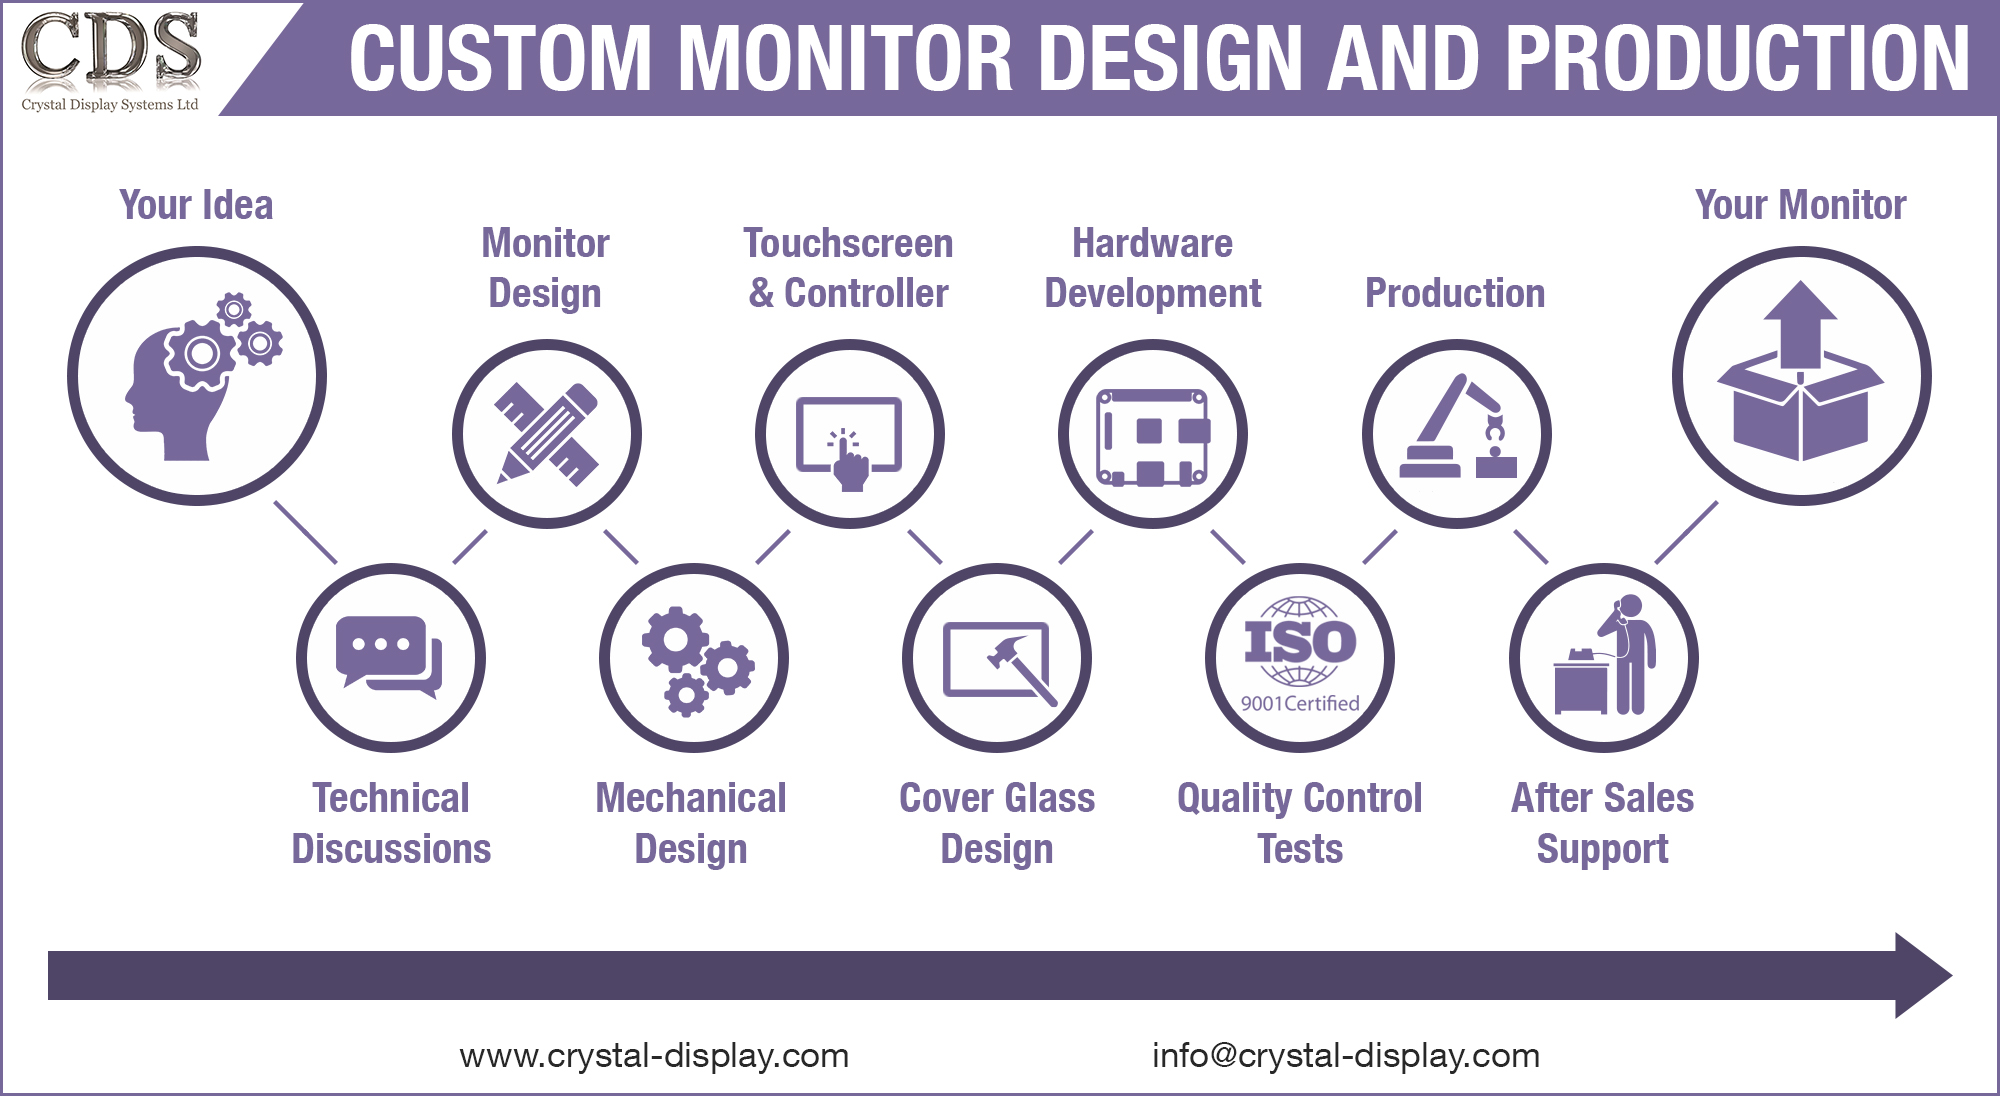 CDS Custom Monitor Design and Production